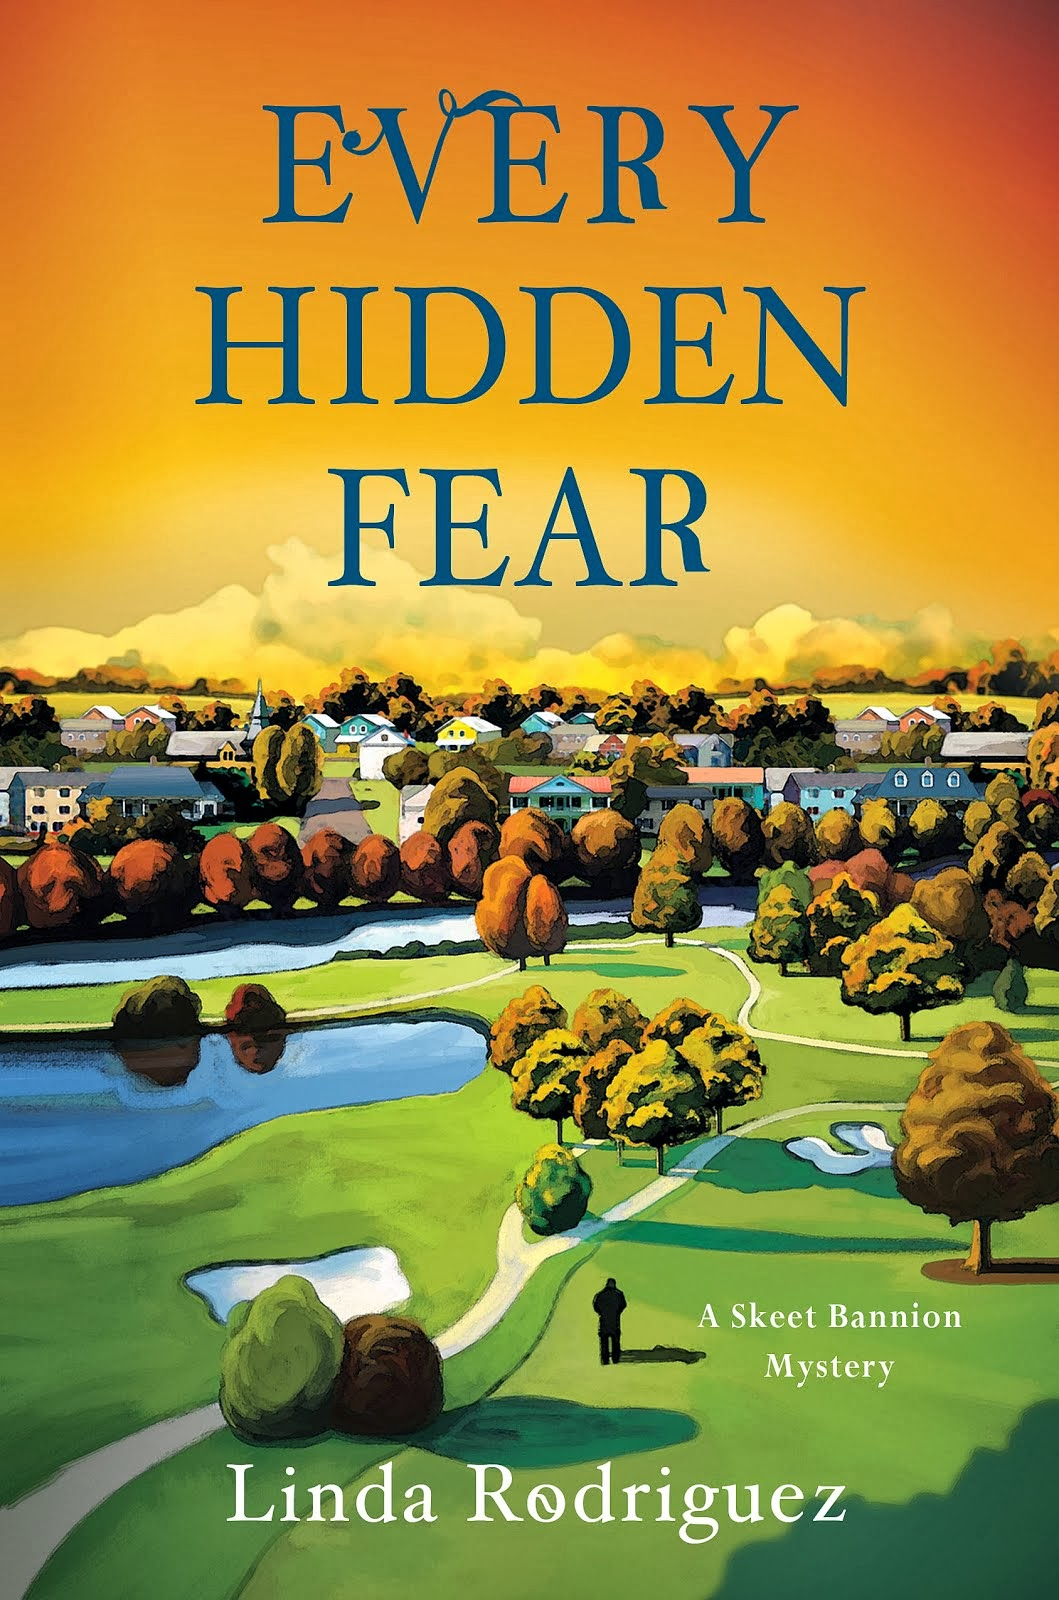 My newest Skeet Bannion mystery novel, EVERY HIDDEN FEAR, is out now. Click on its image to order.